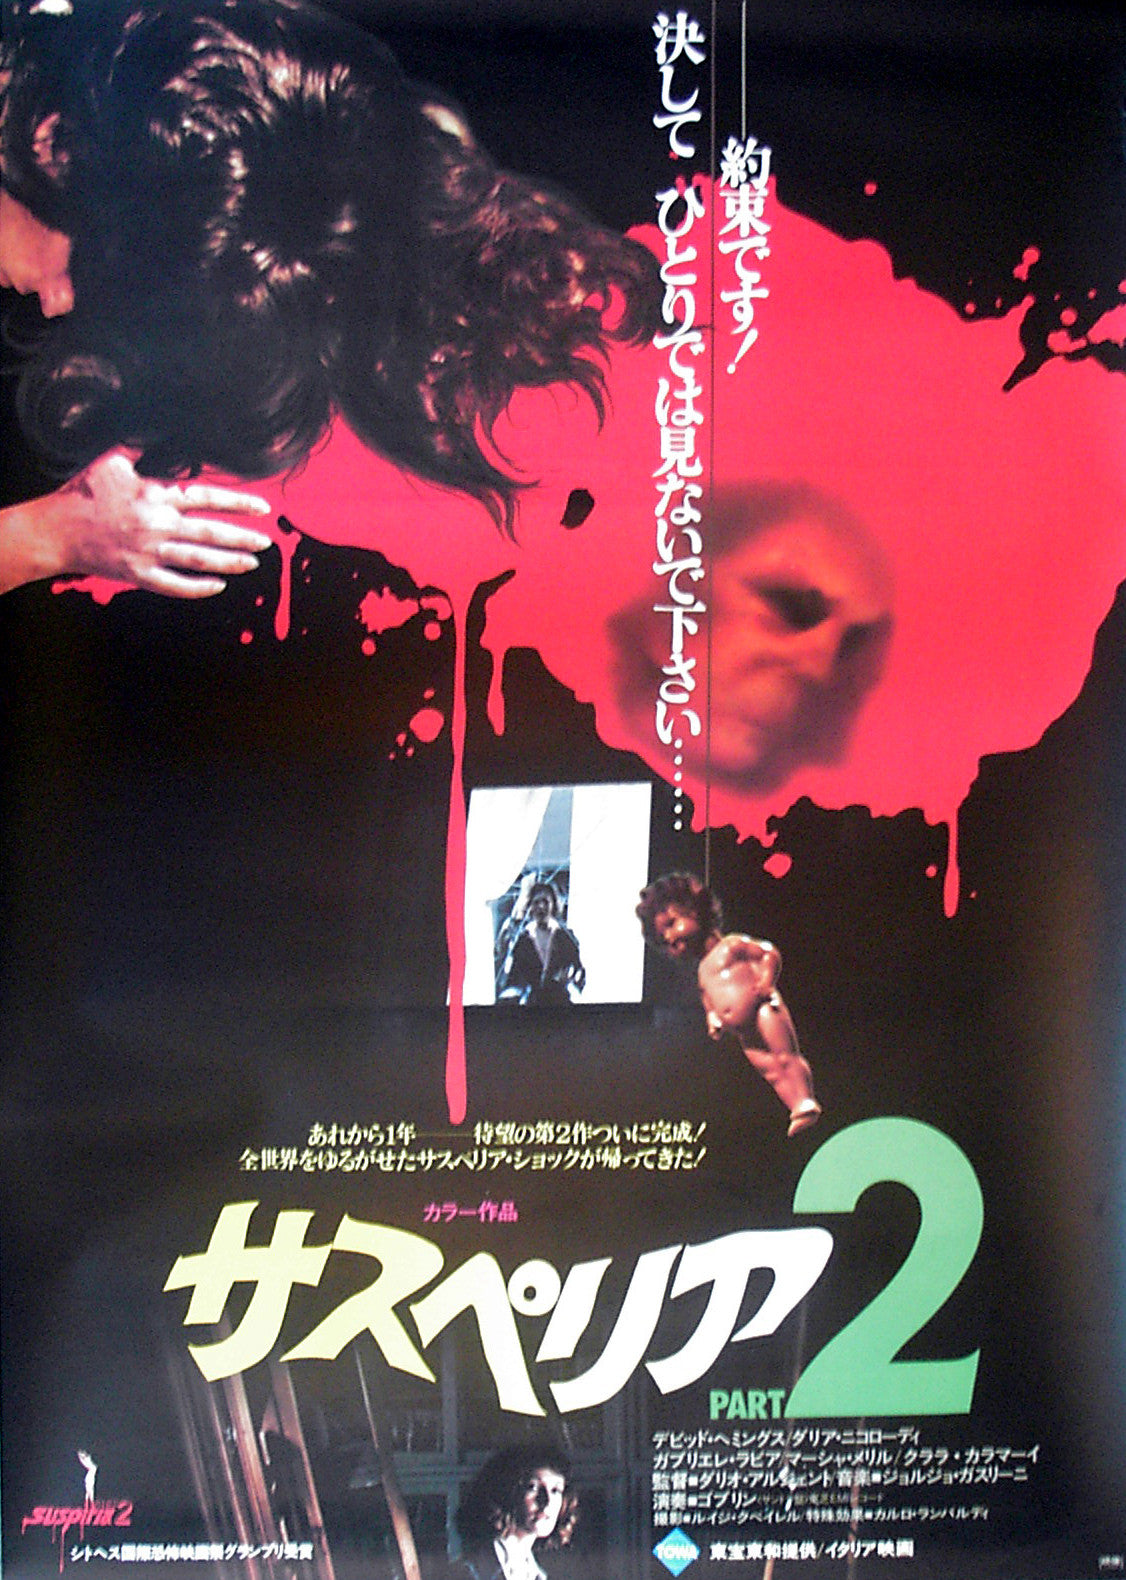 DEEP RED - Japanese poster